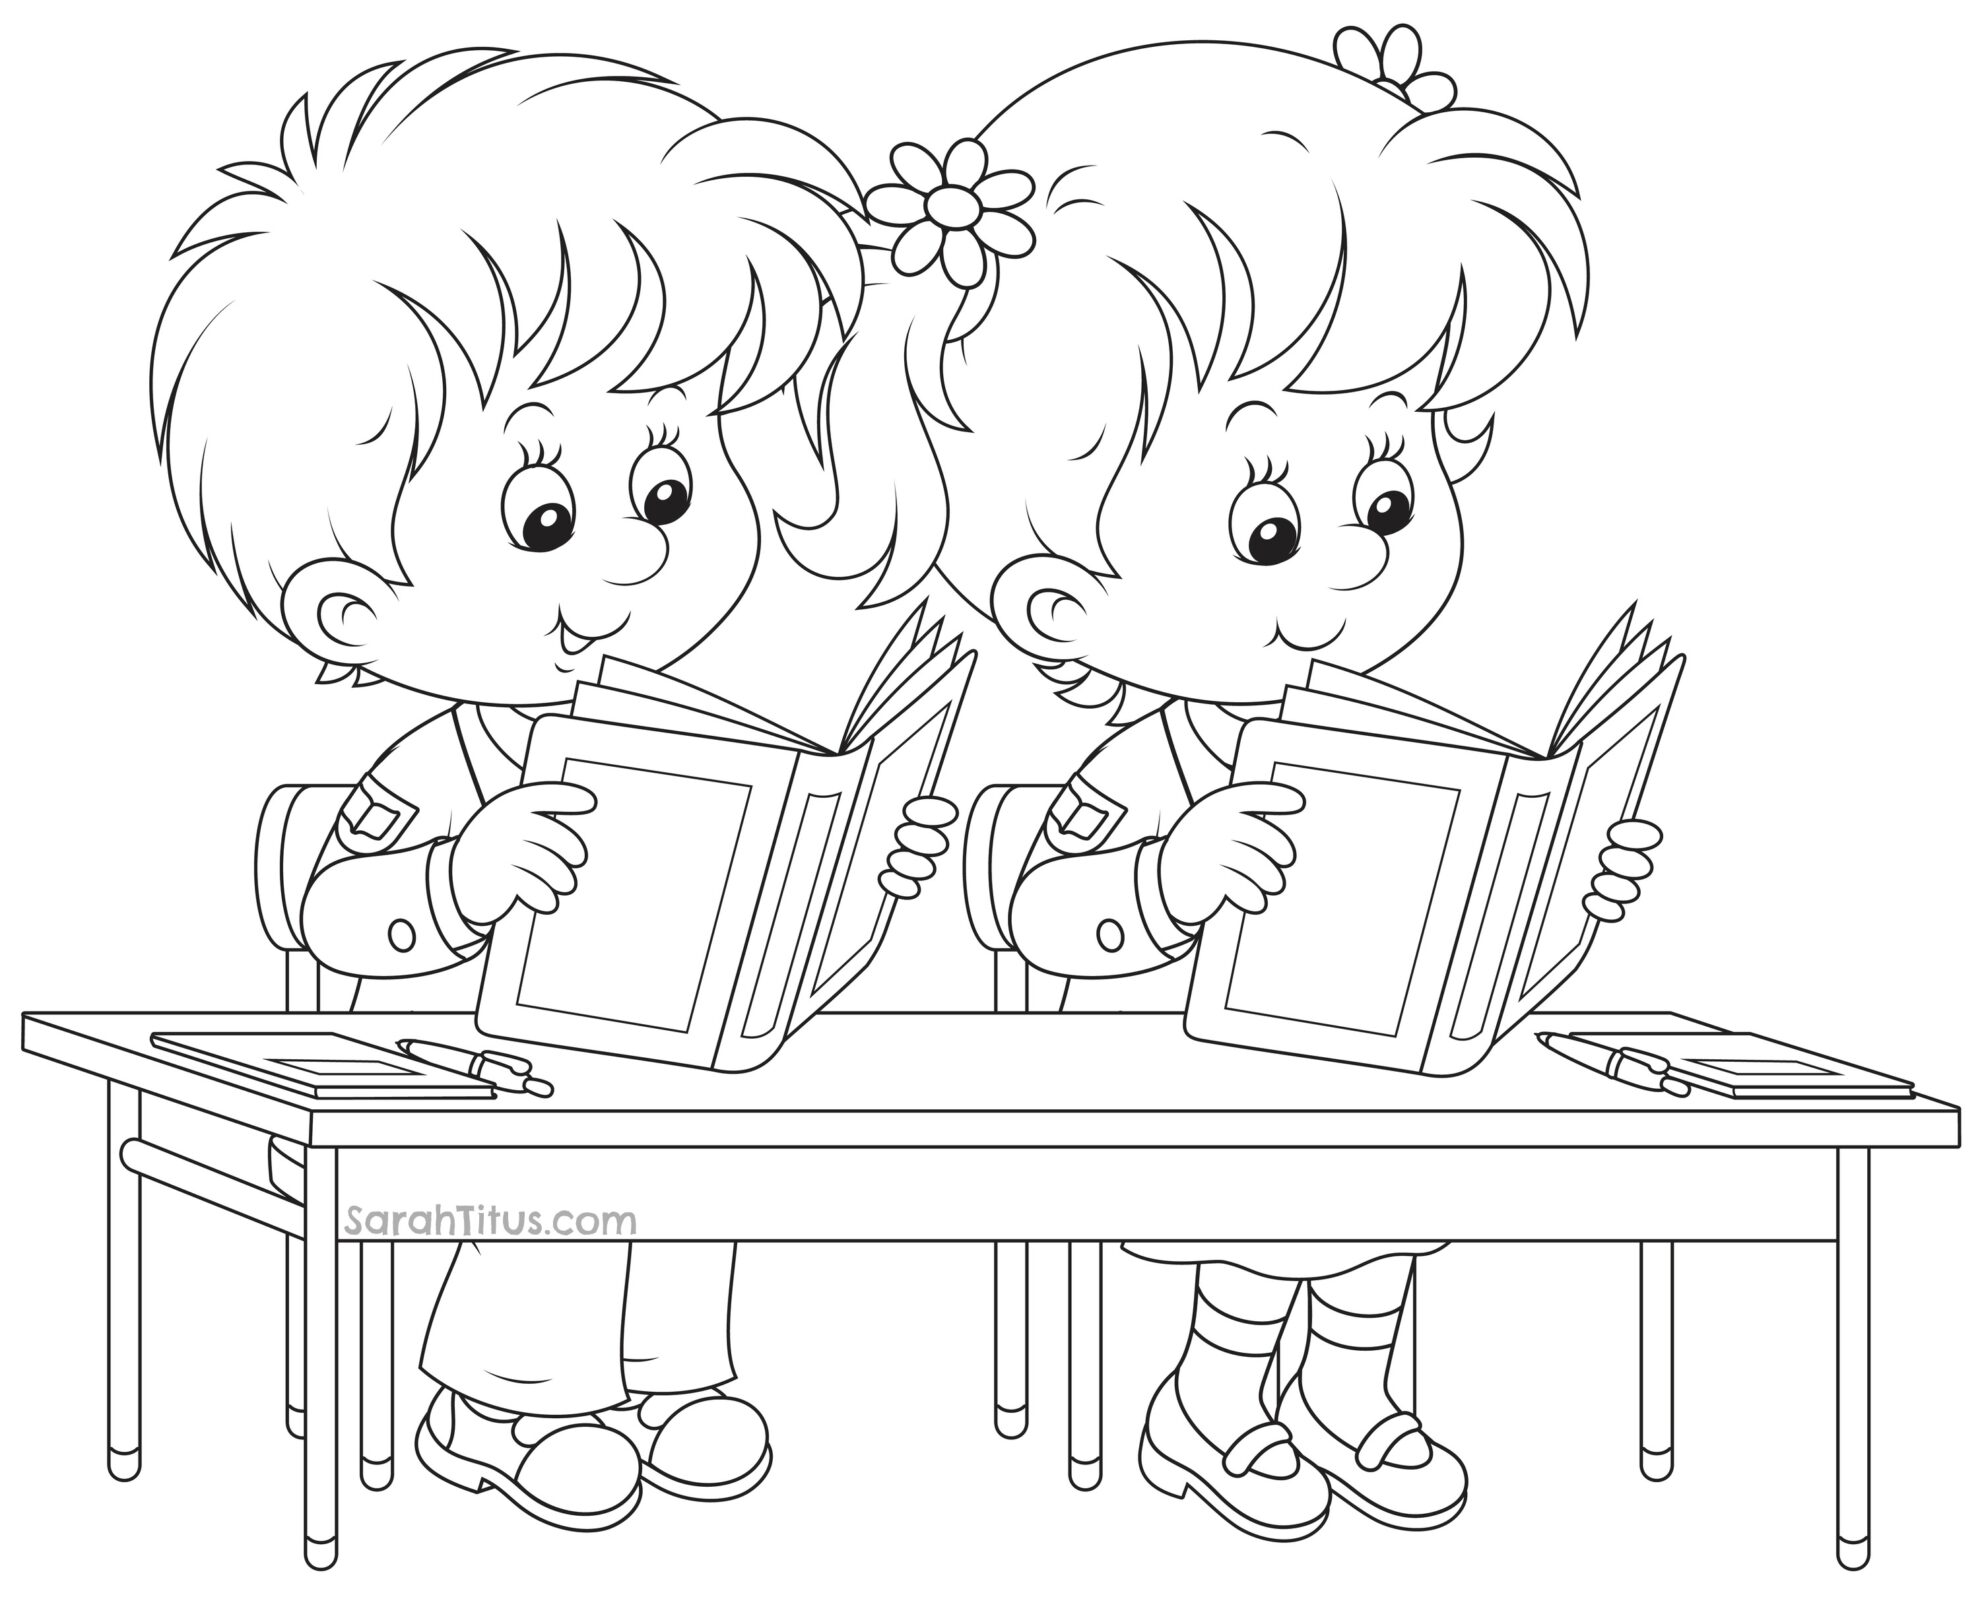 coloring picture school first day of school coloring pages getcoloringpagescom coloring picture school